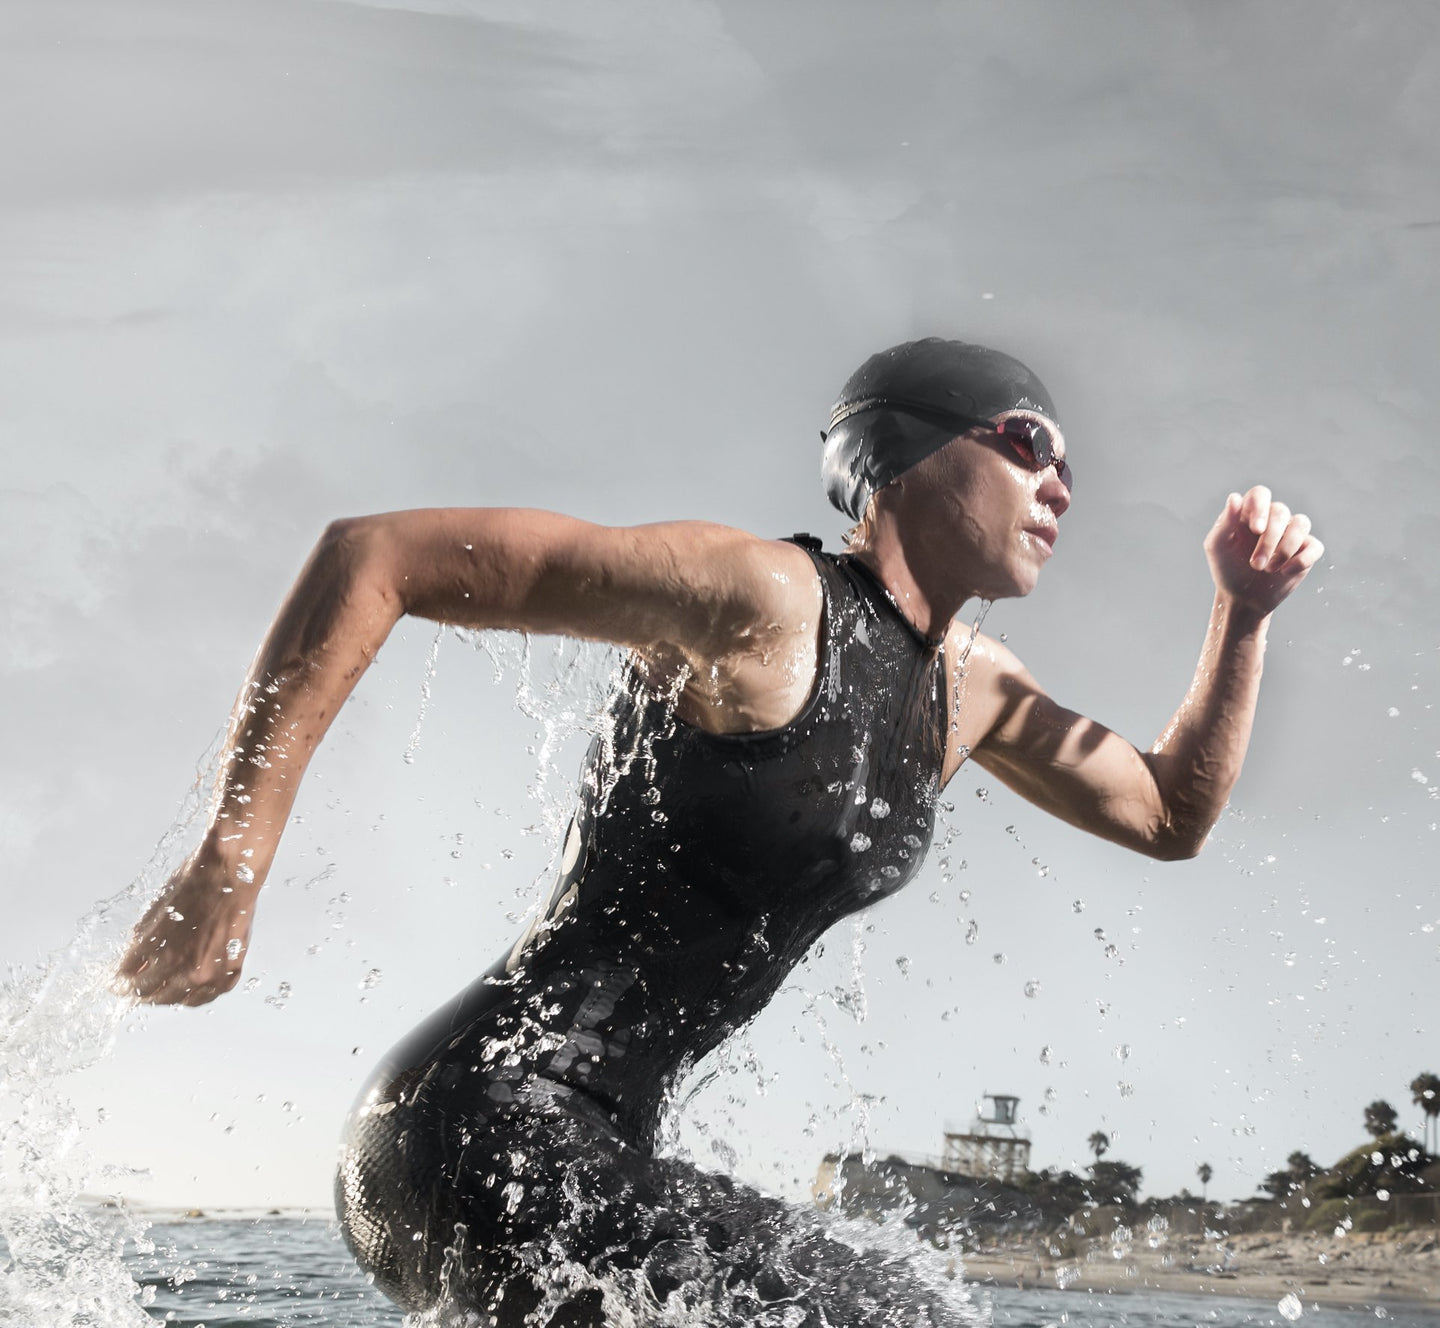 Triathlon Swim Gear & Accessories